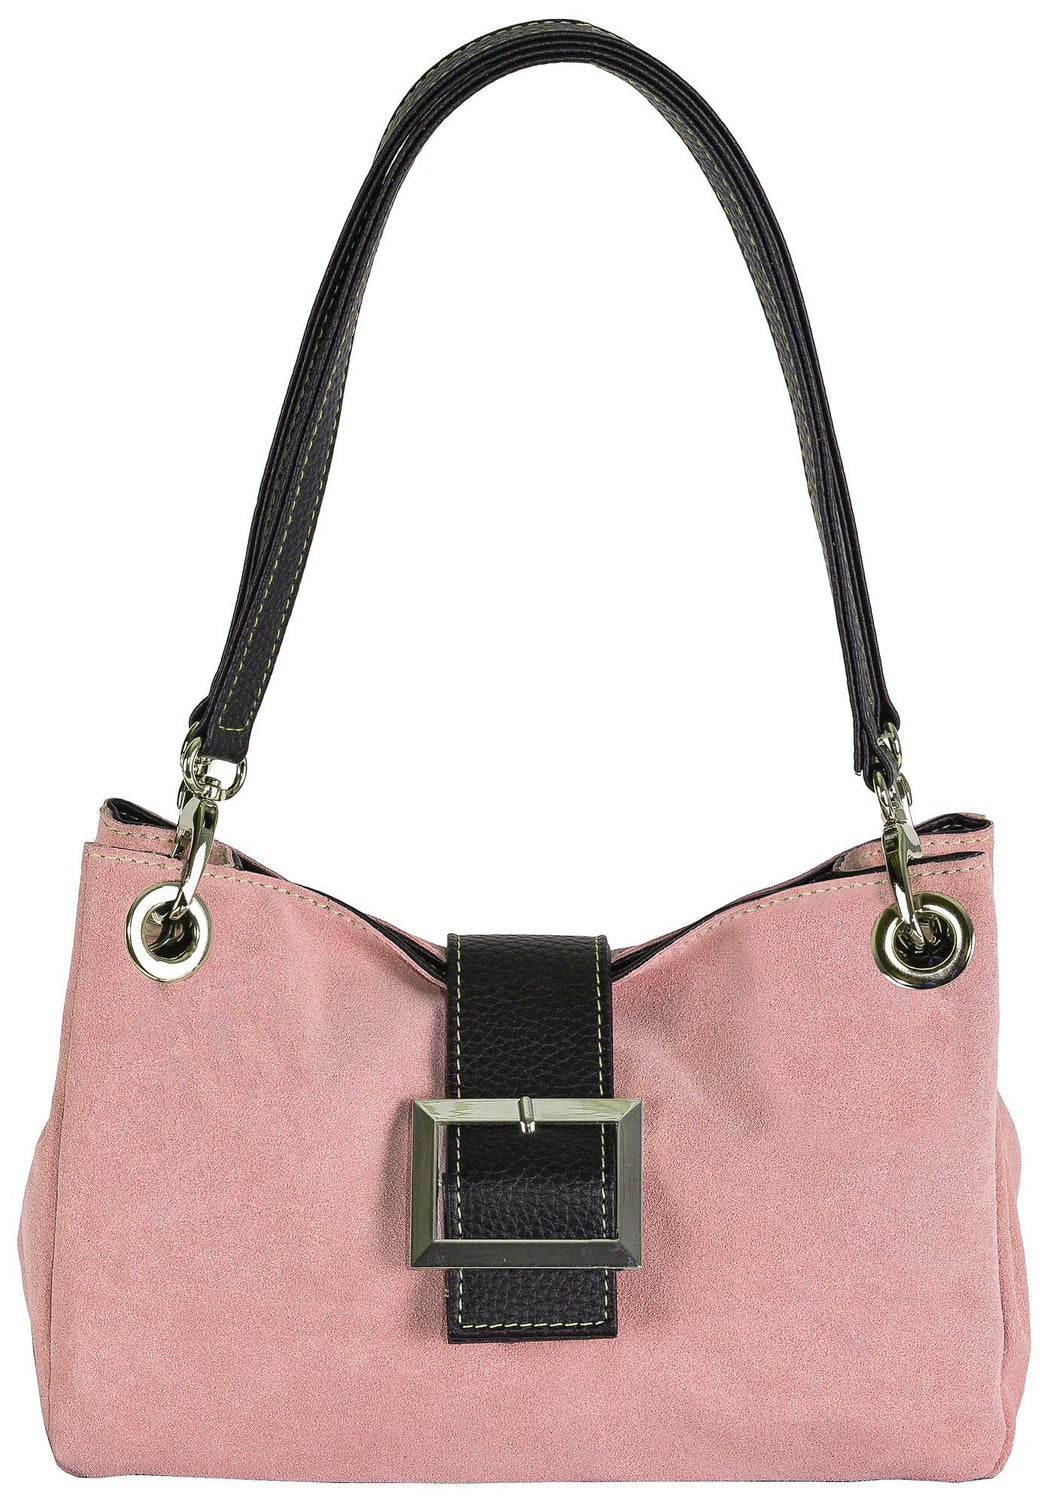 SMALL LIGHT PINK GENUINE SUEDE MULTI POCKET HANDBAG WITH BUCKLE